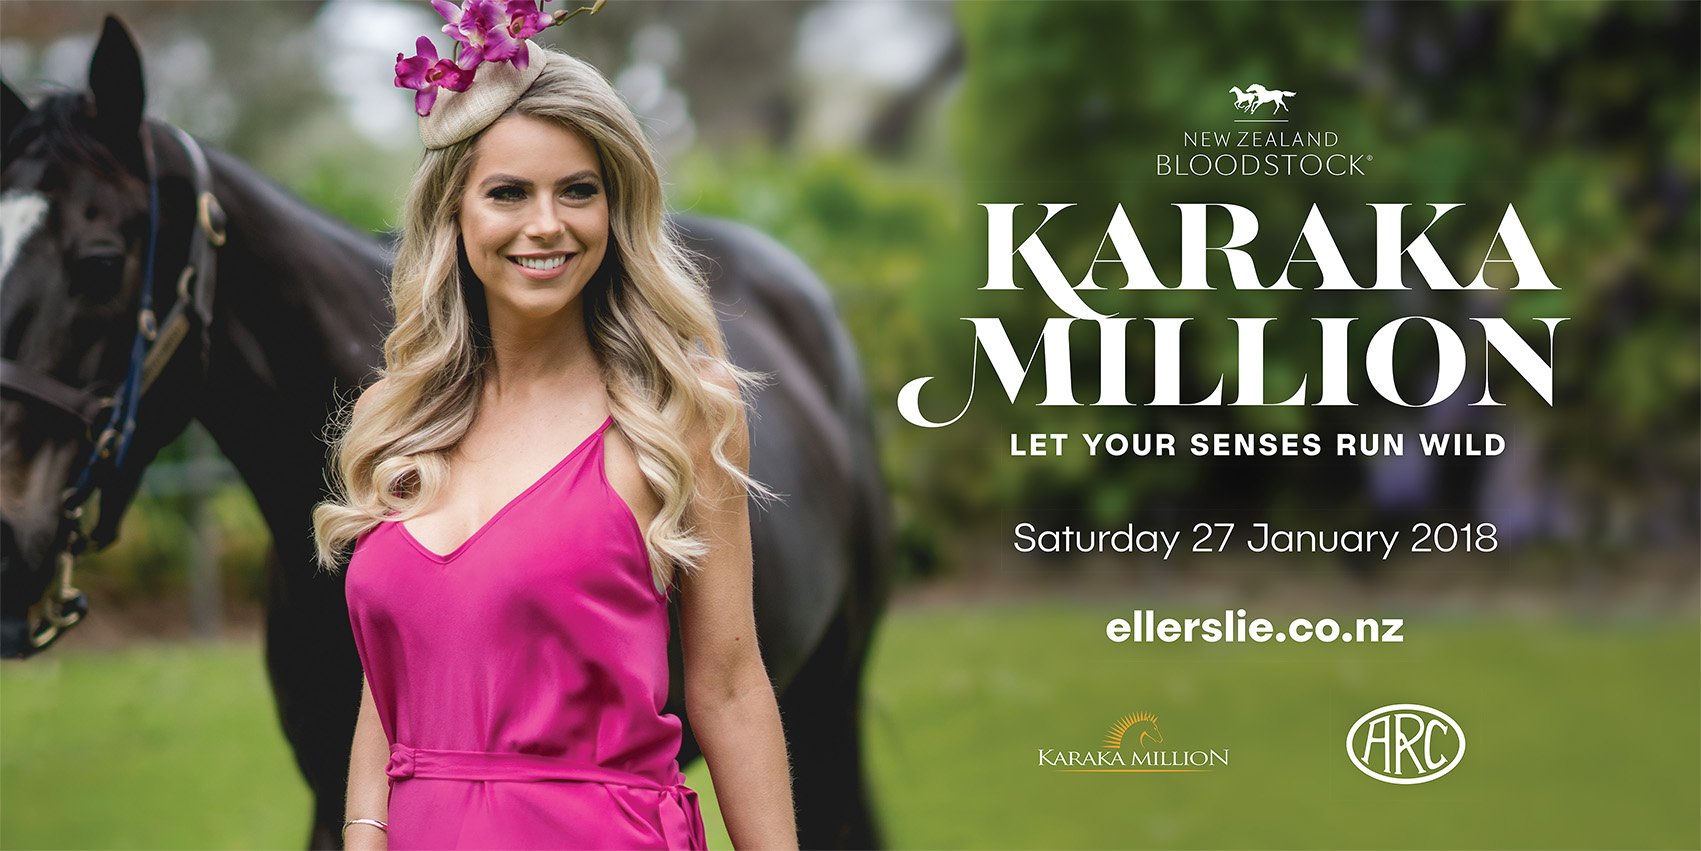 ARC7268 Karaka Million Grandstand Billboard 2400x1200mm.indd